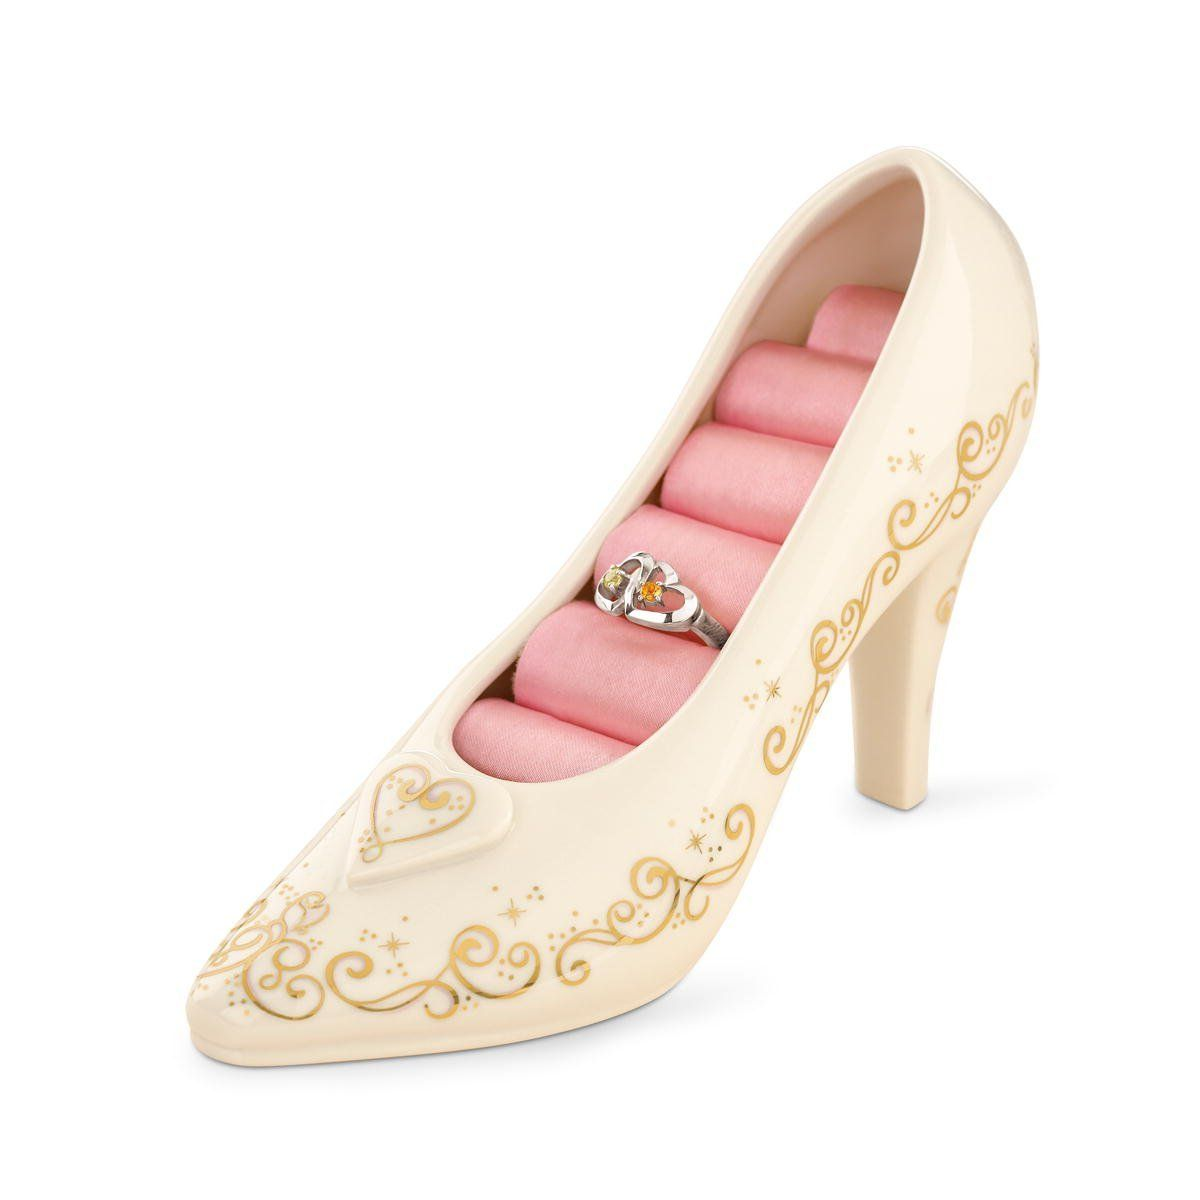 Ring Holder Shoes